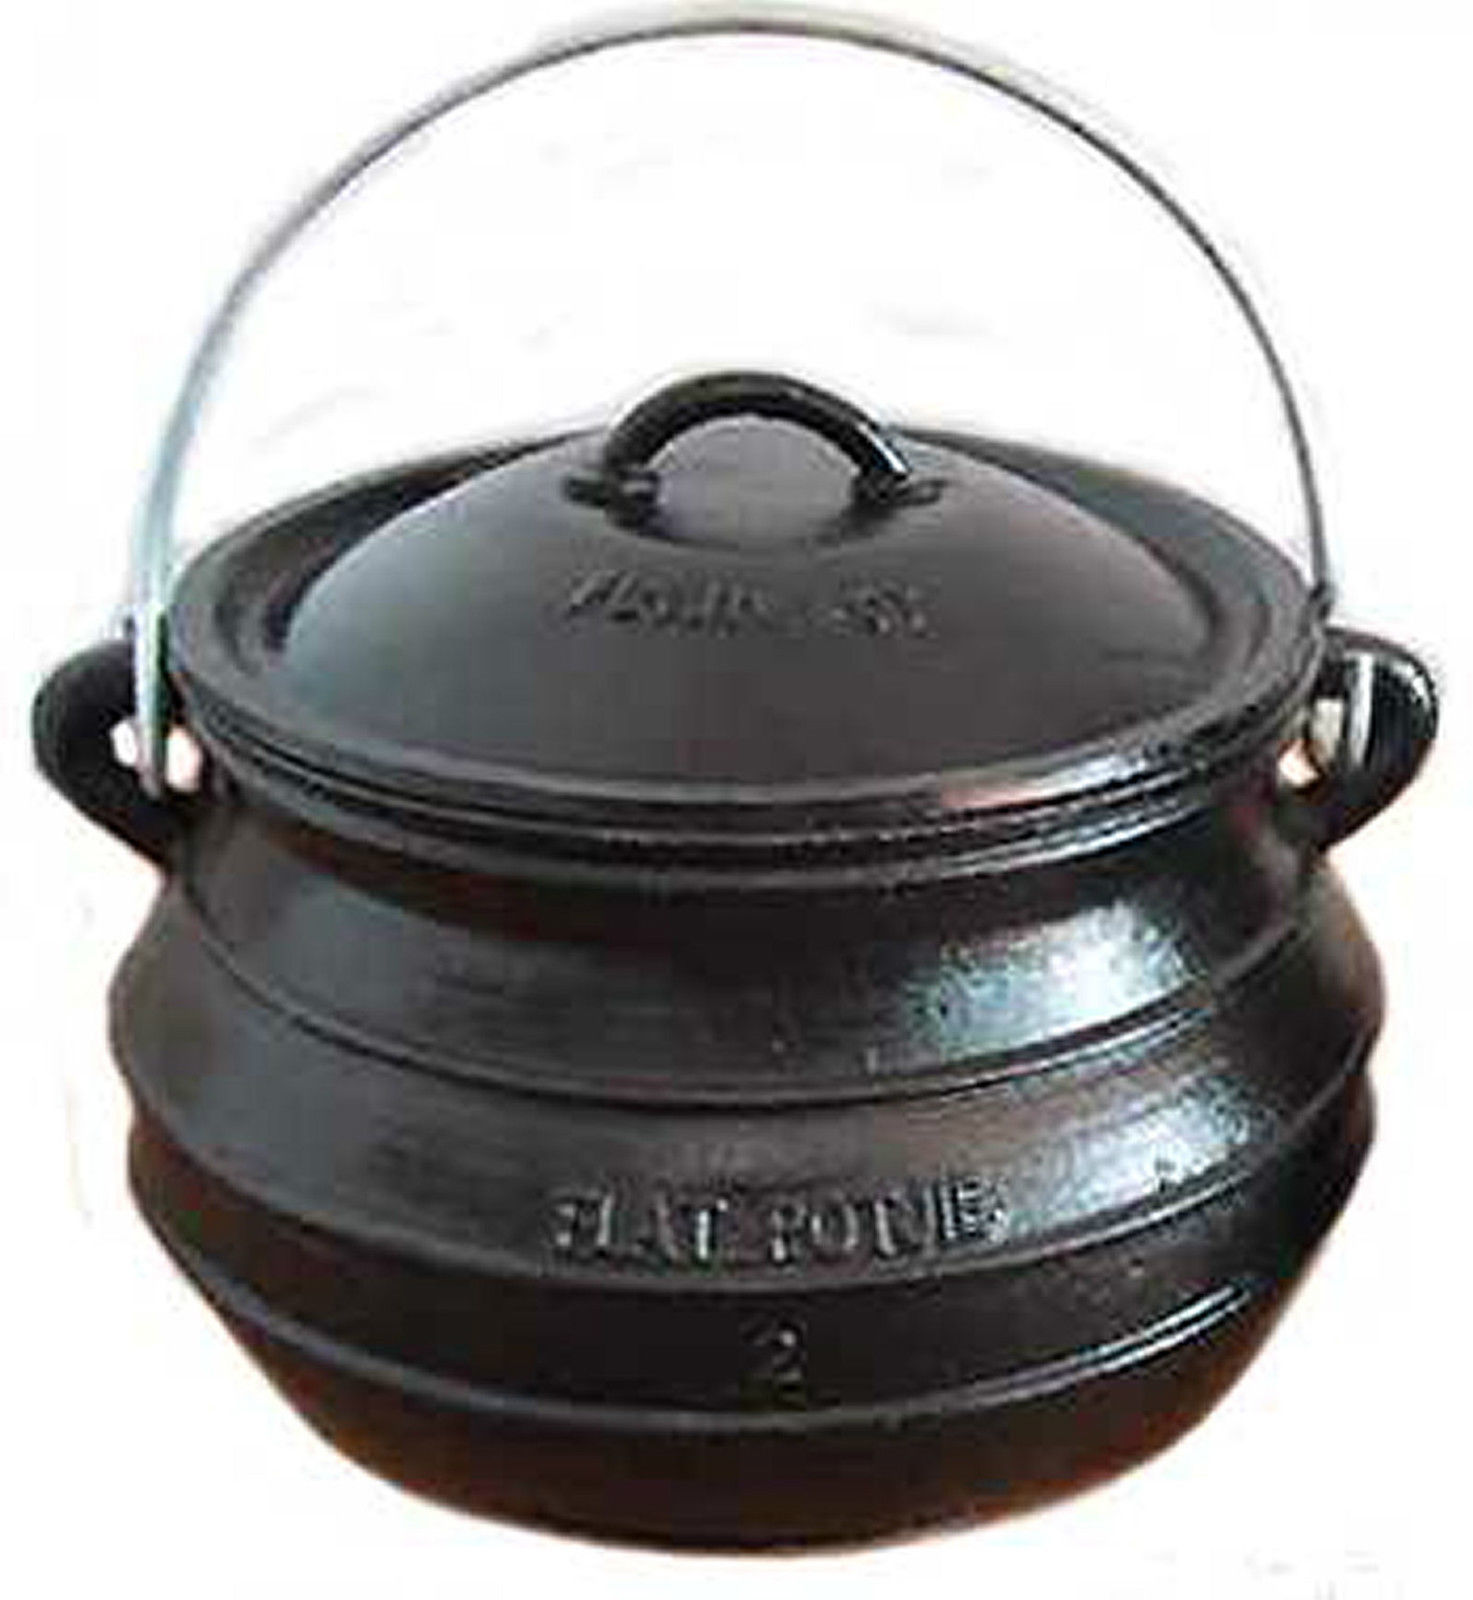 2qt cast iron flat bottom potjie bean pot camping survival stovetop cookware camping cookware. Black Bedroom Furniture Sets. Home Design Ideas